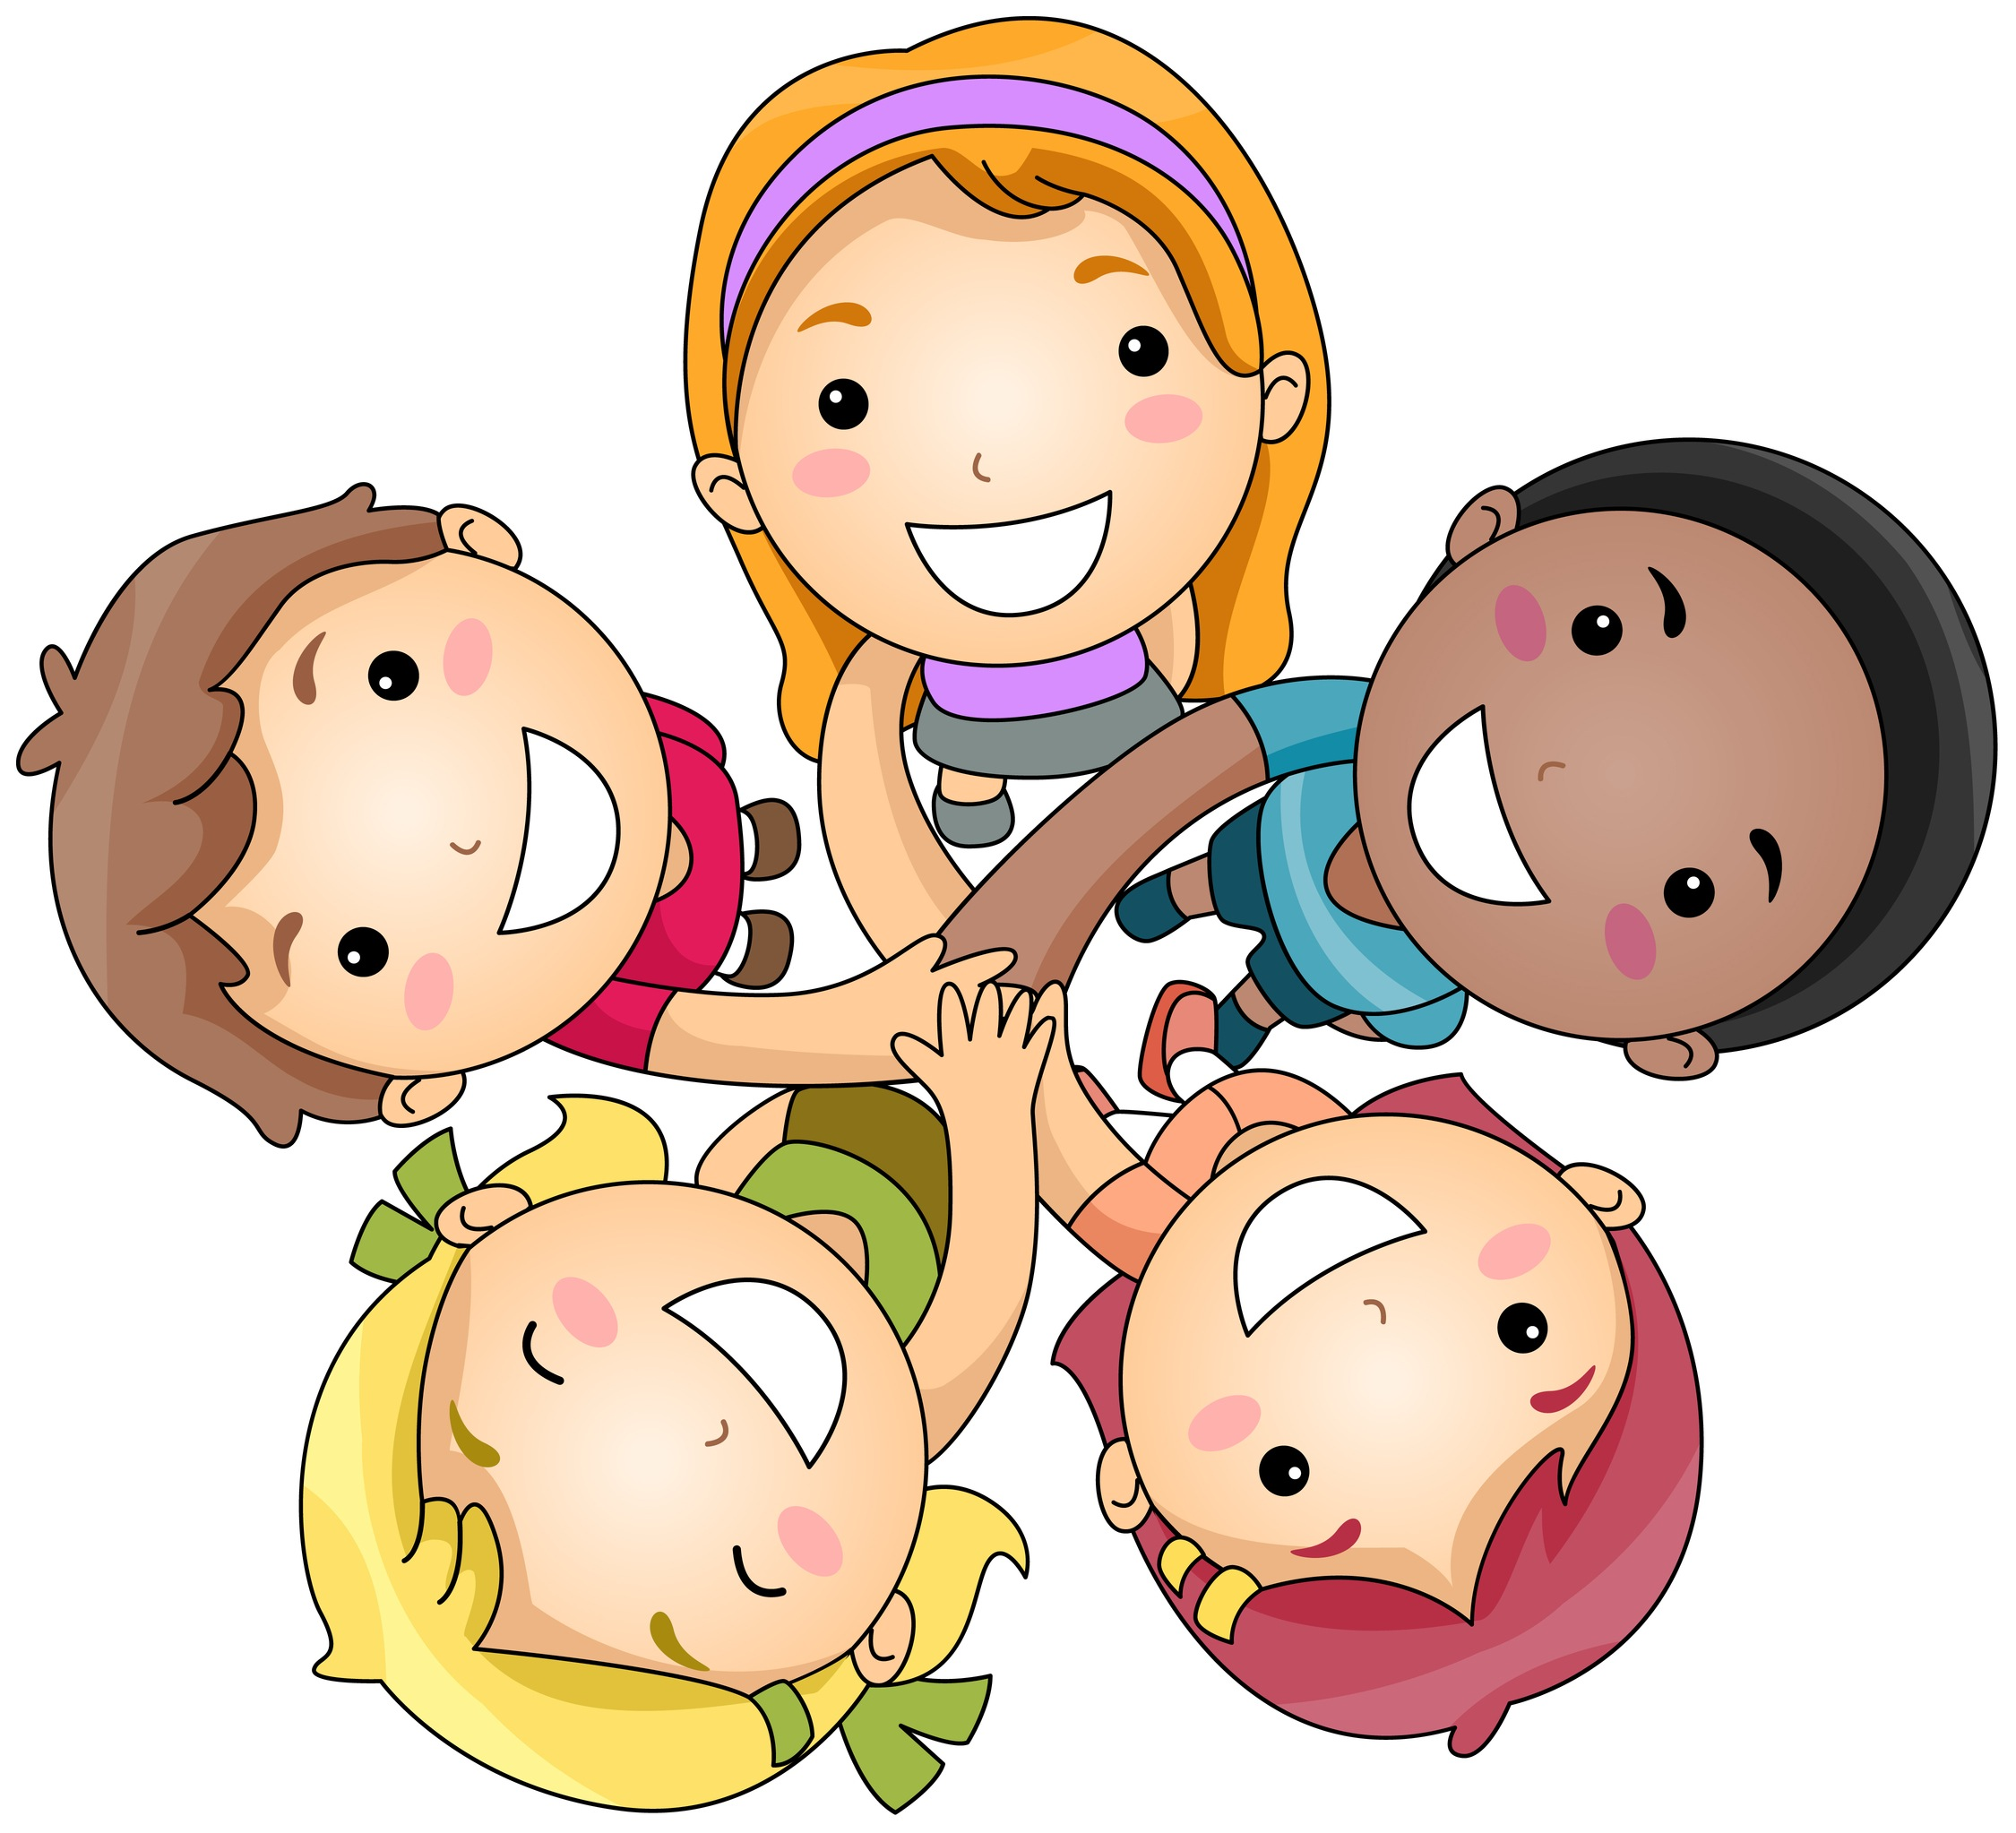 With friends portal . Friendship clipart bonding